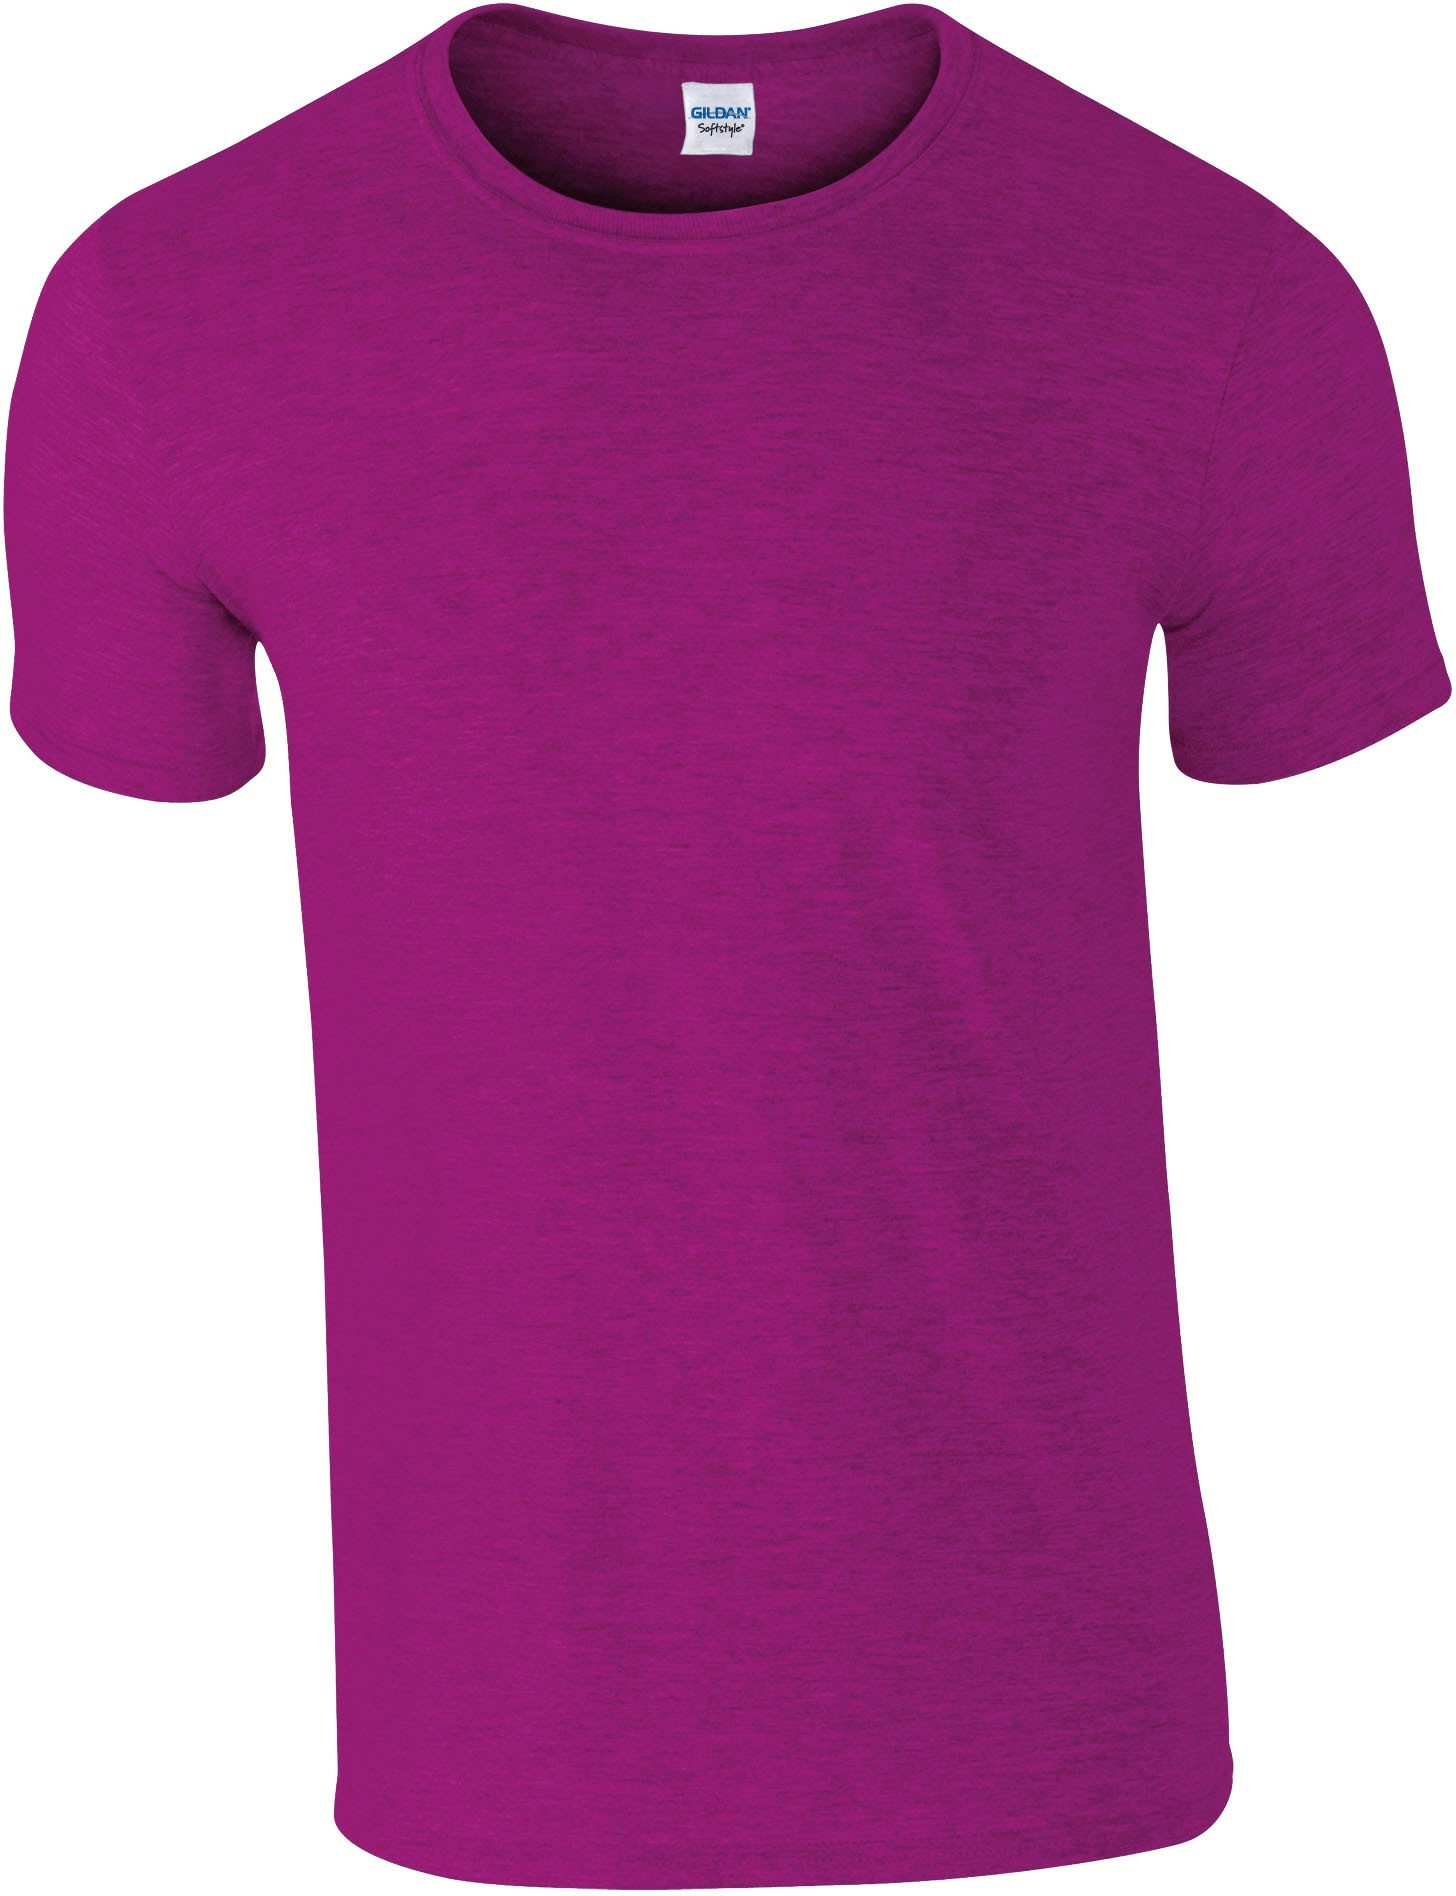 Gildan softstyle fit T-Shirt